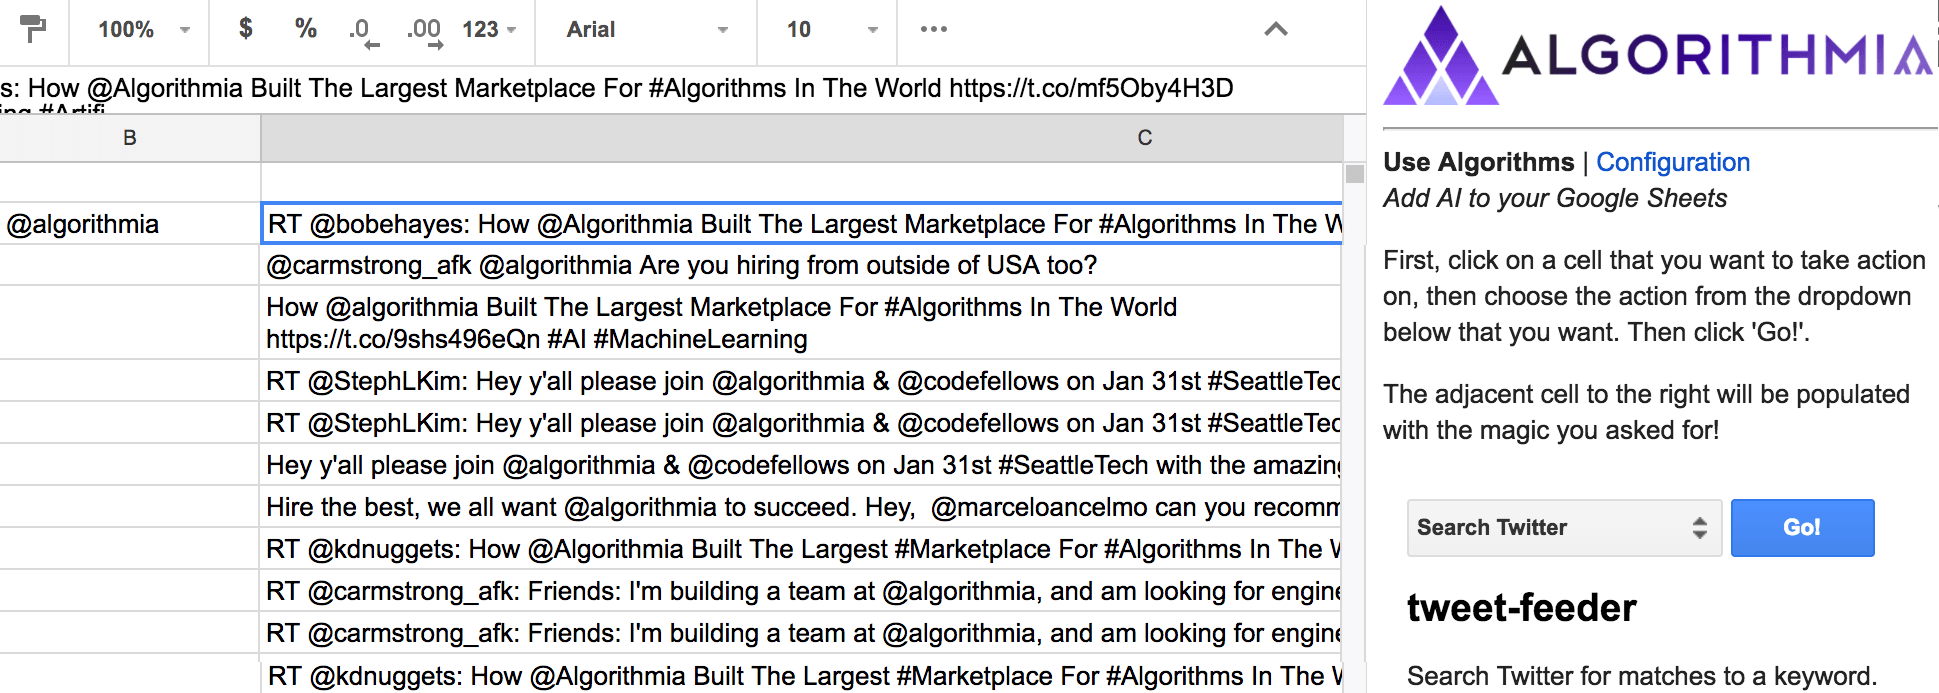 Google Sheets + AI | Algorithmia Blog